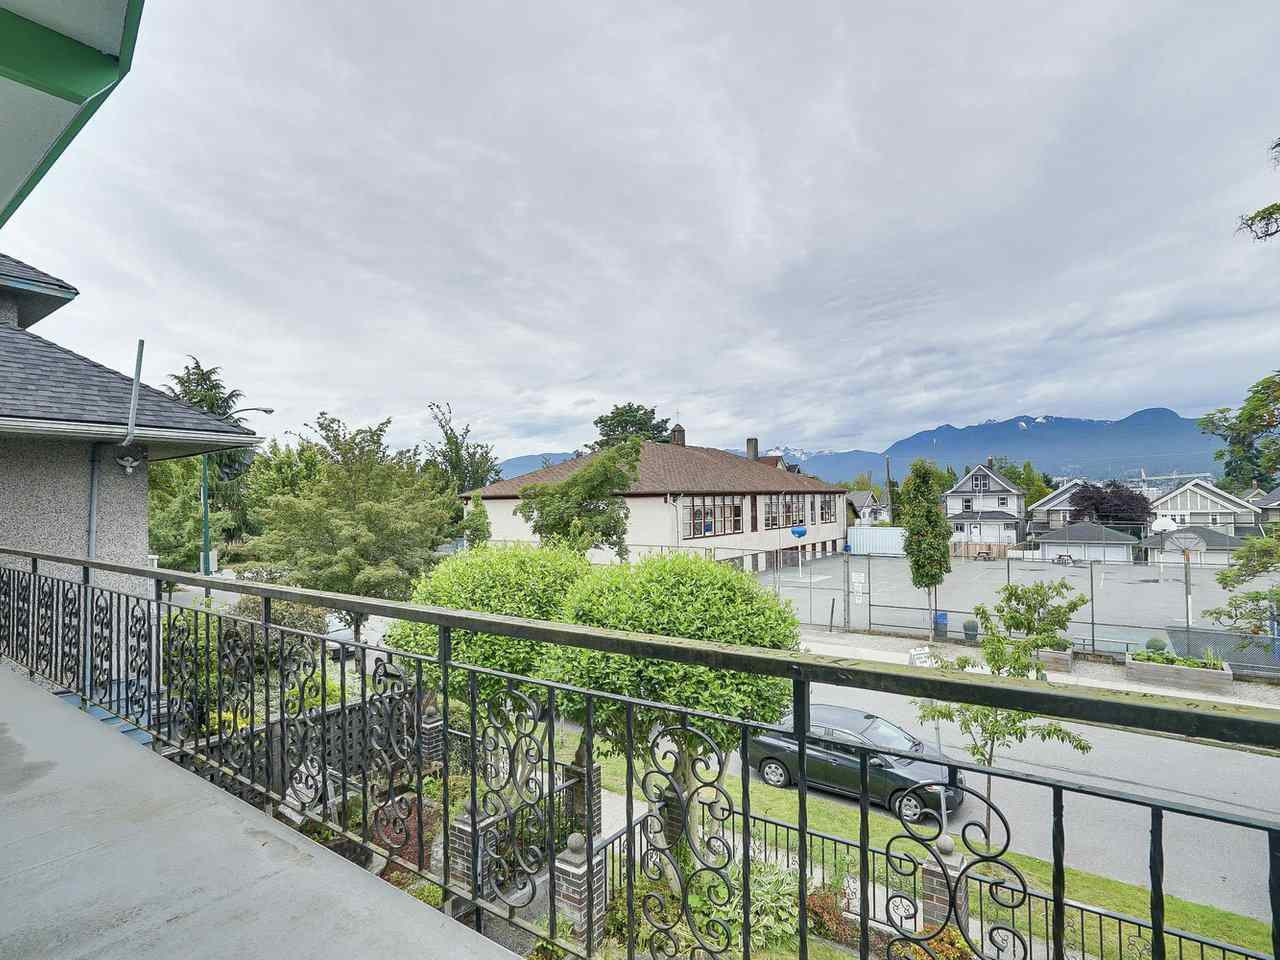 Main Photo: 1928 VENABLES STREET in Vancouver: Grandview VE House for sale (Vancouver East)  : MLS®# R2180121